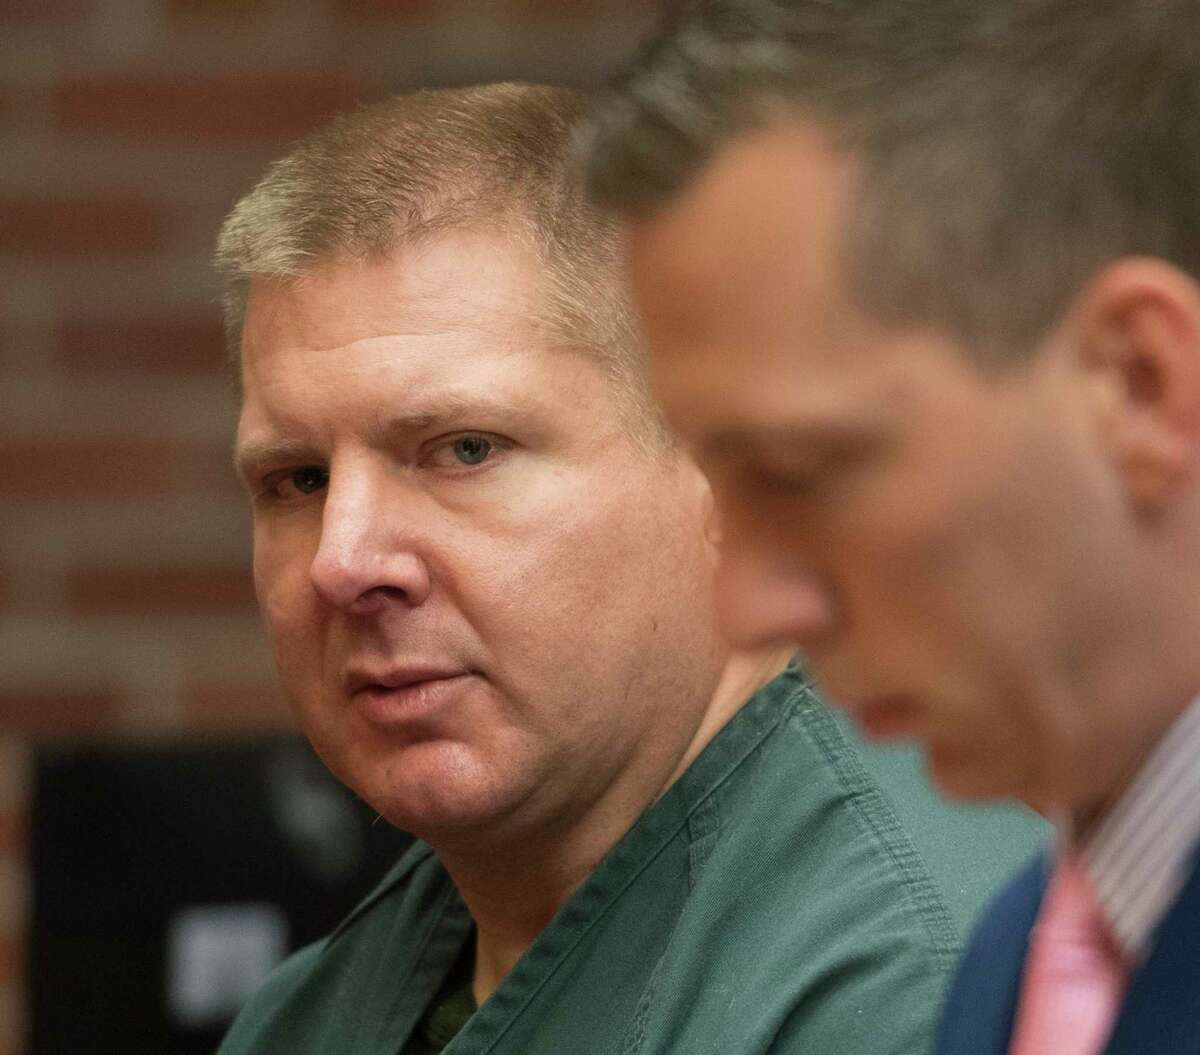 Former Saratoga County Sheriff's Deputy Shawn Glans, left appears with his attorney Marc R. Pallozzi, right for his sentencing in front of Judge Felix Catena sitting in for Judge James Murphy in Saratoga County Court Thursday June 14, 2018 Ballston Spa, N.Y. (Skip Dickstein/Times Union)